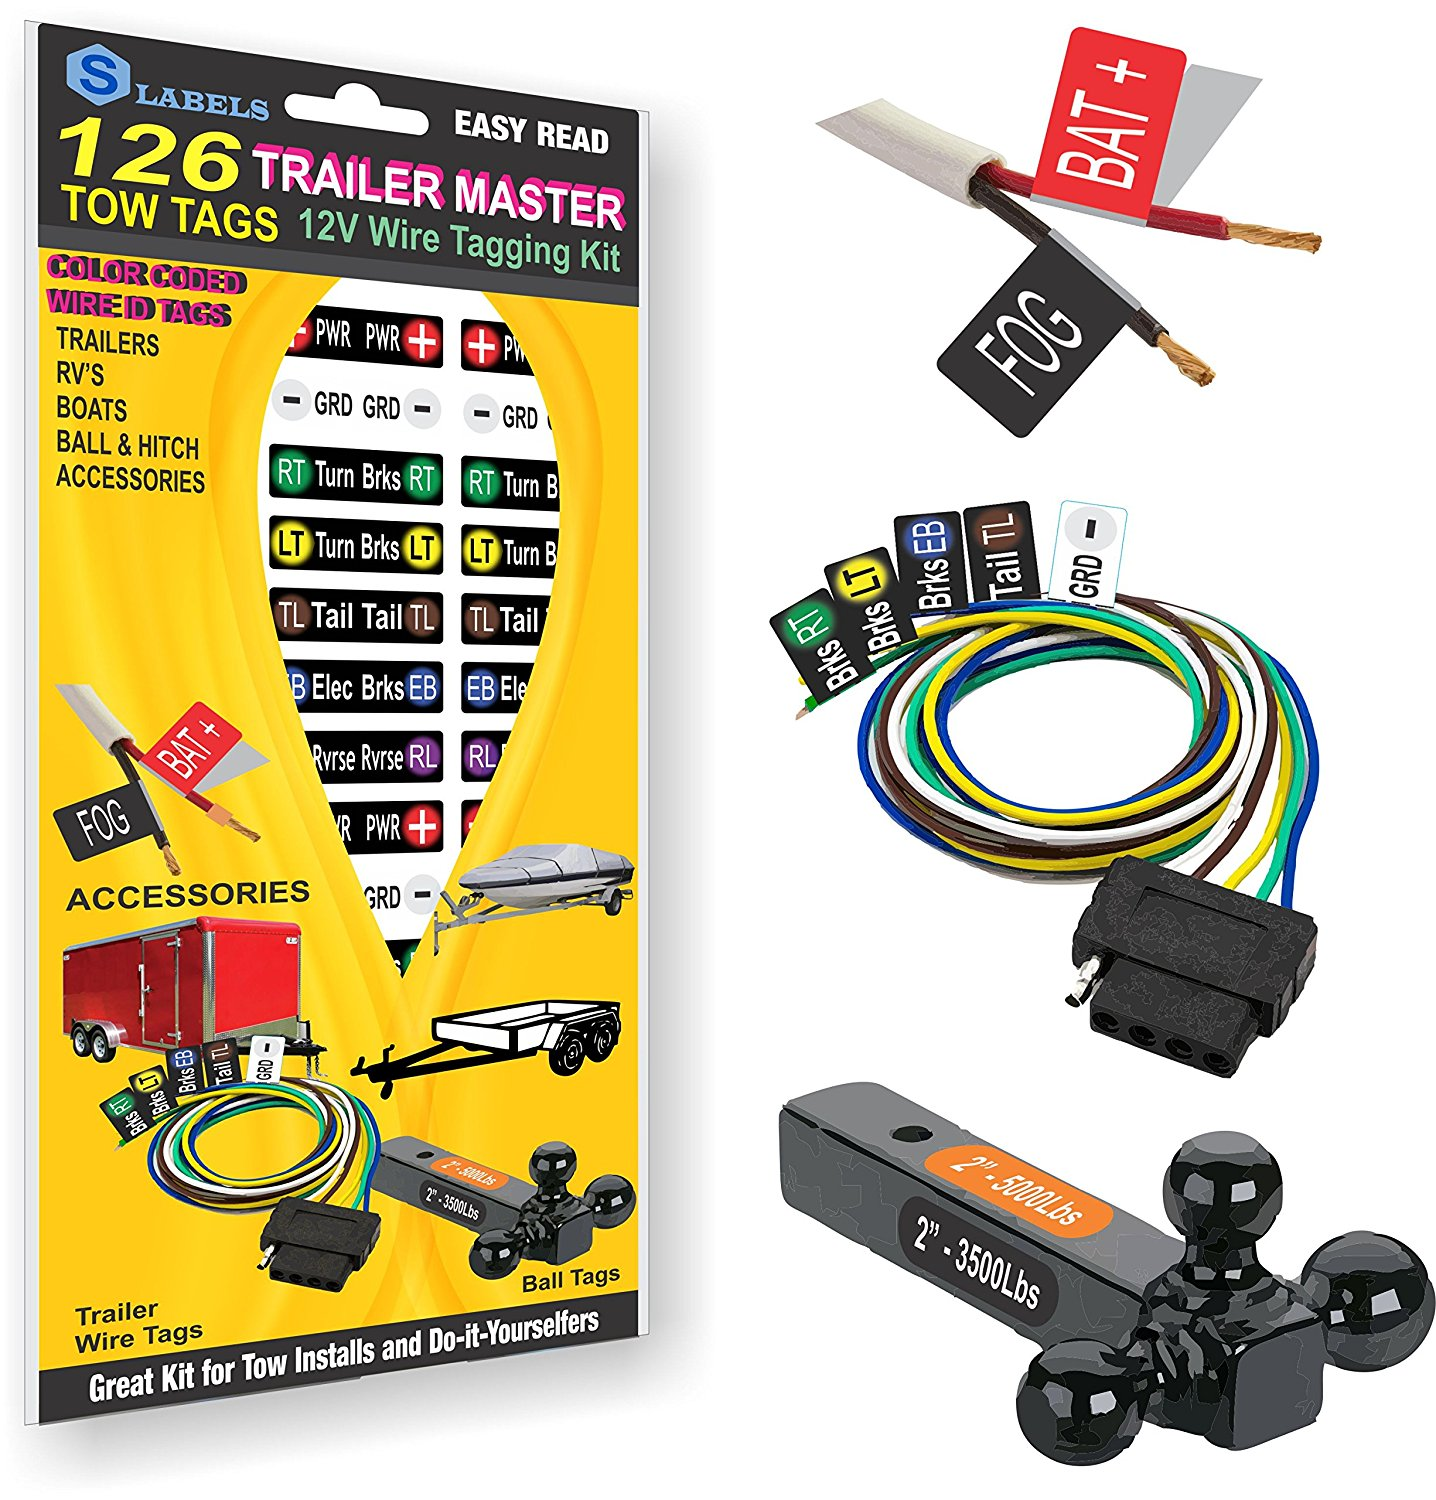 Trailer Master 12v Wire Tag Kit 3 Label Sheets 126 Color Coded Tags